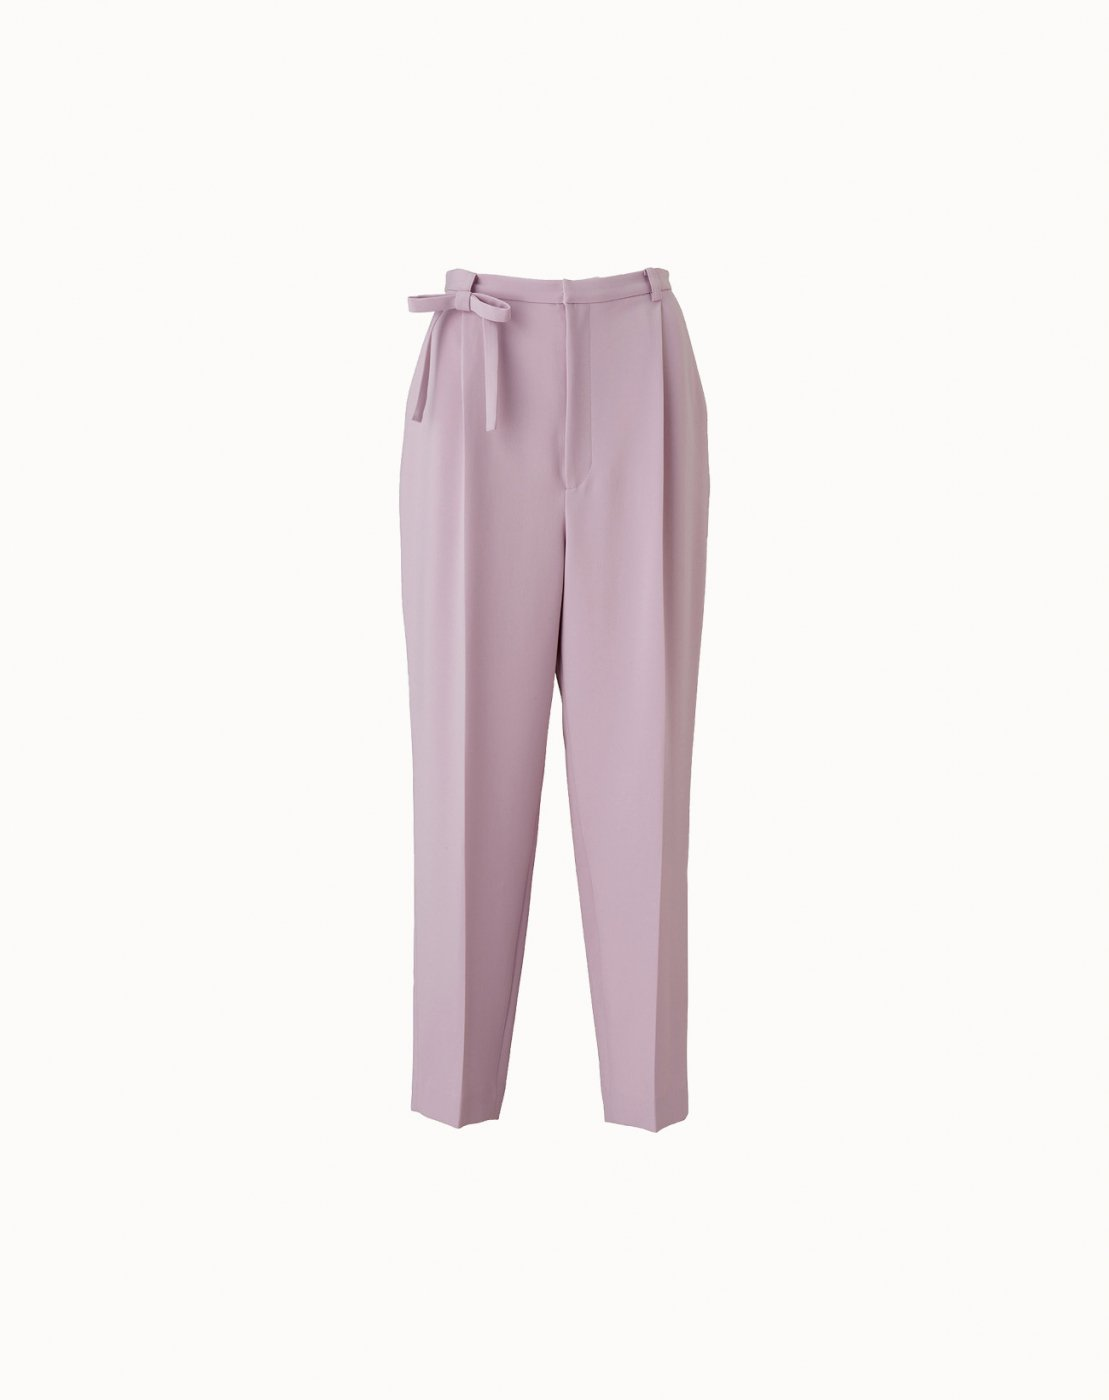 leur logette - Double Georgette Pants - Pink